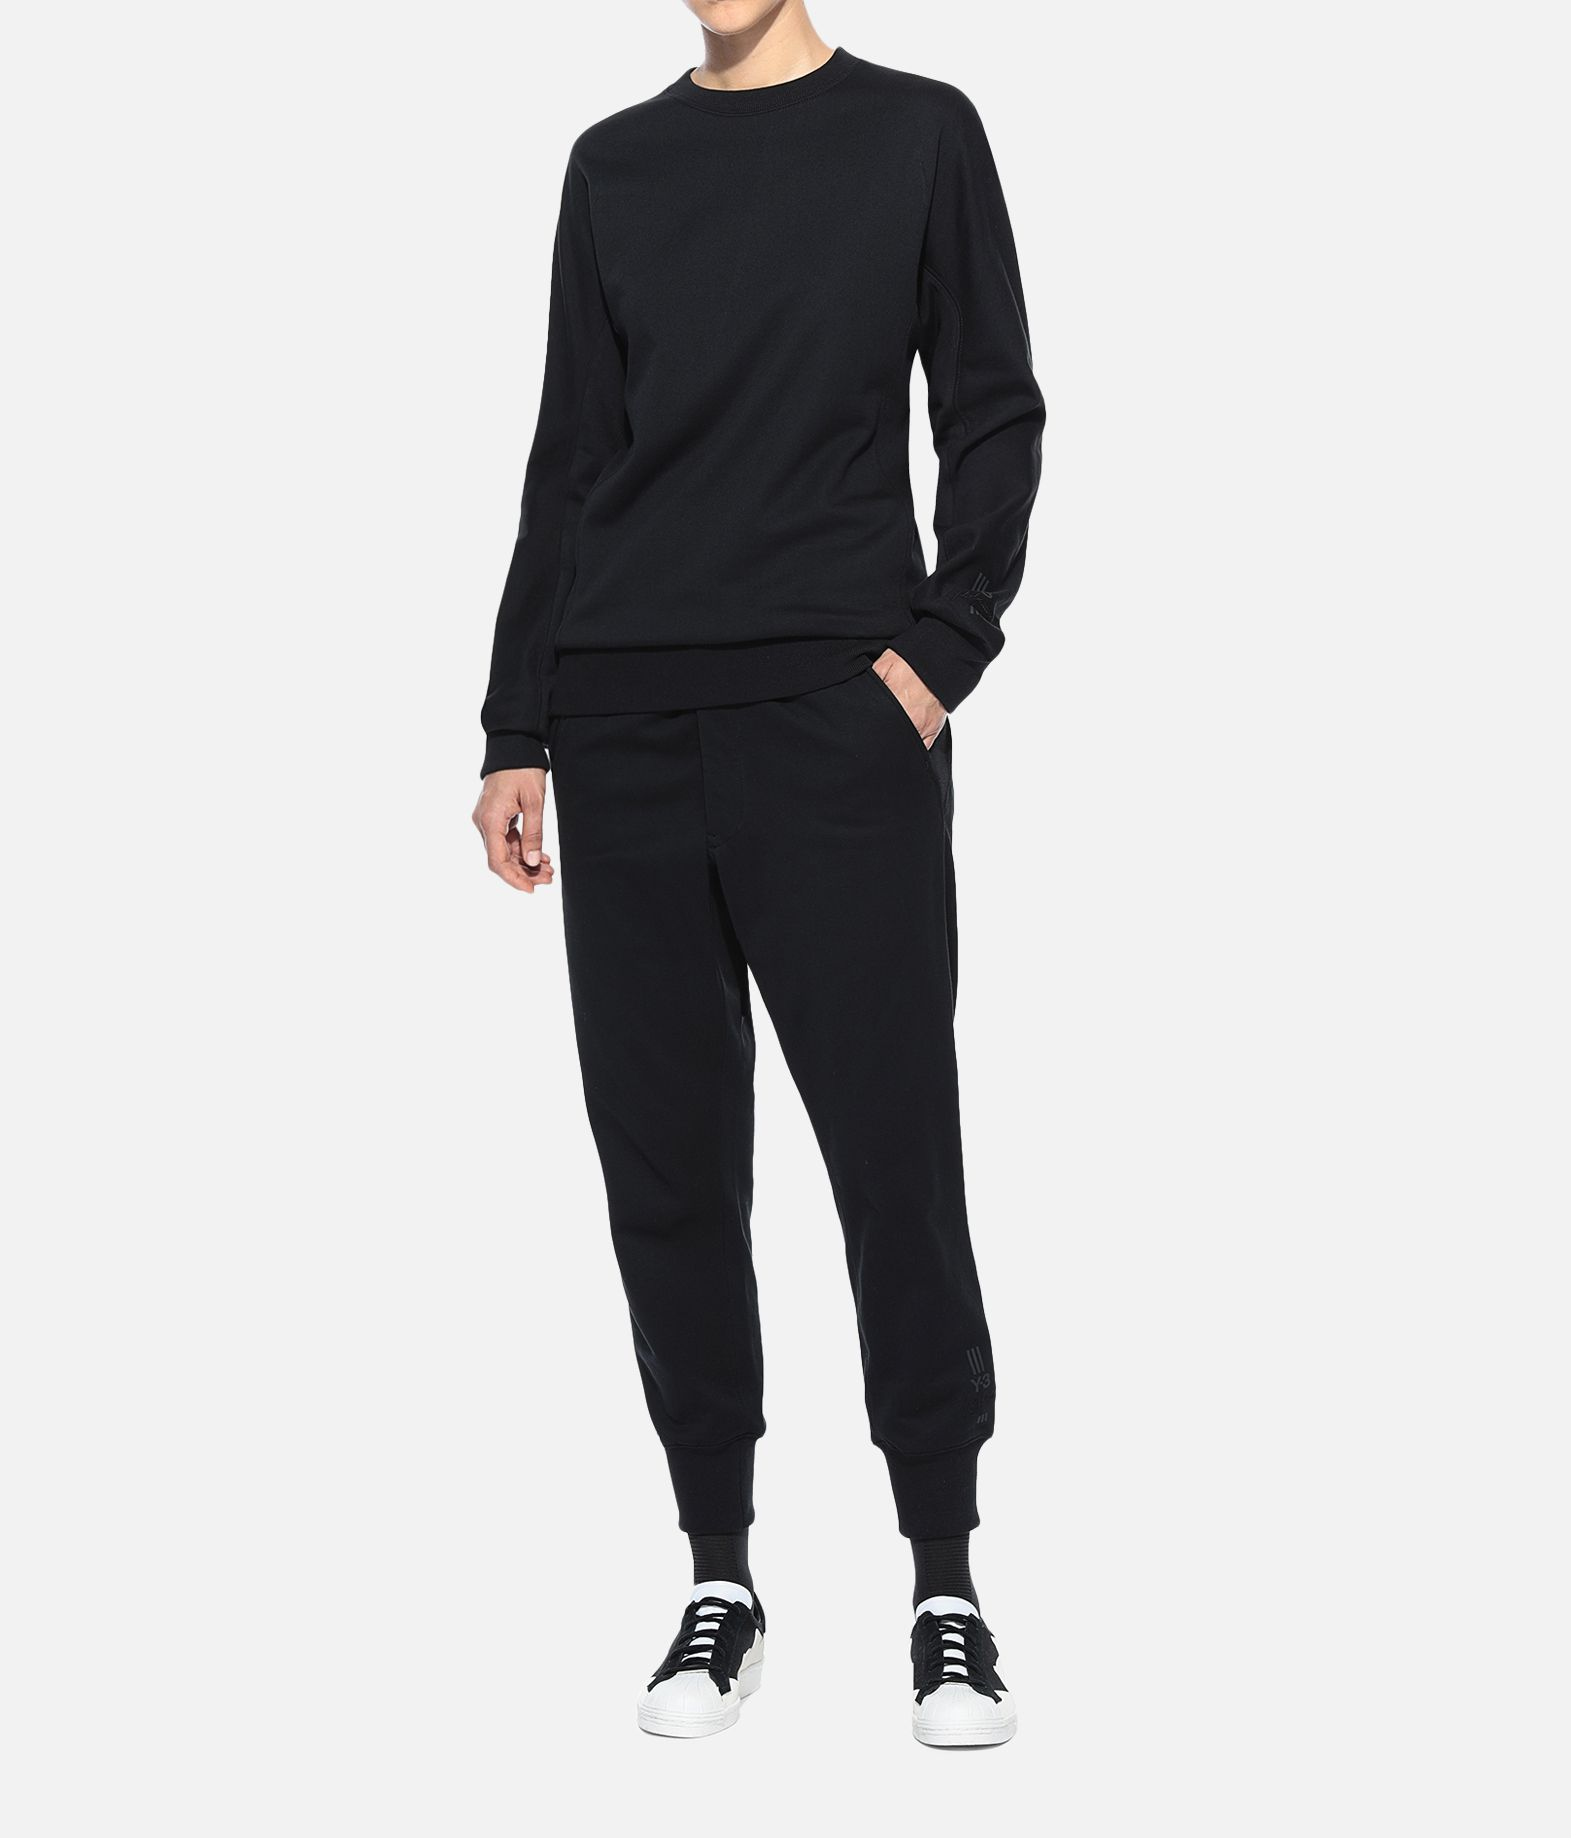 Y-3 Y-3 Classic Sweater Sweatshirt Woman a